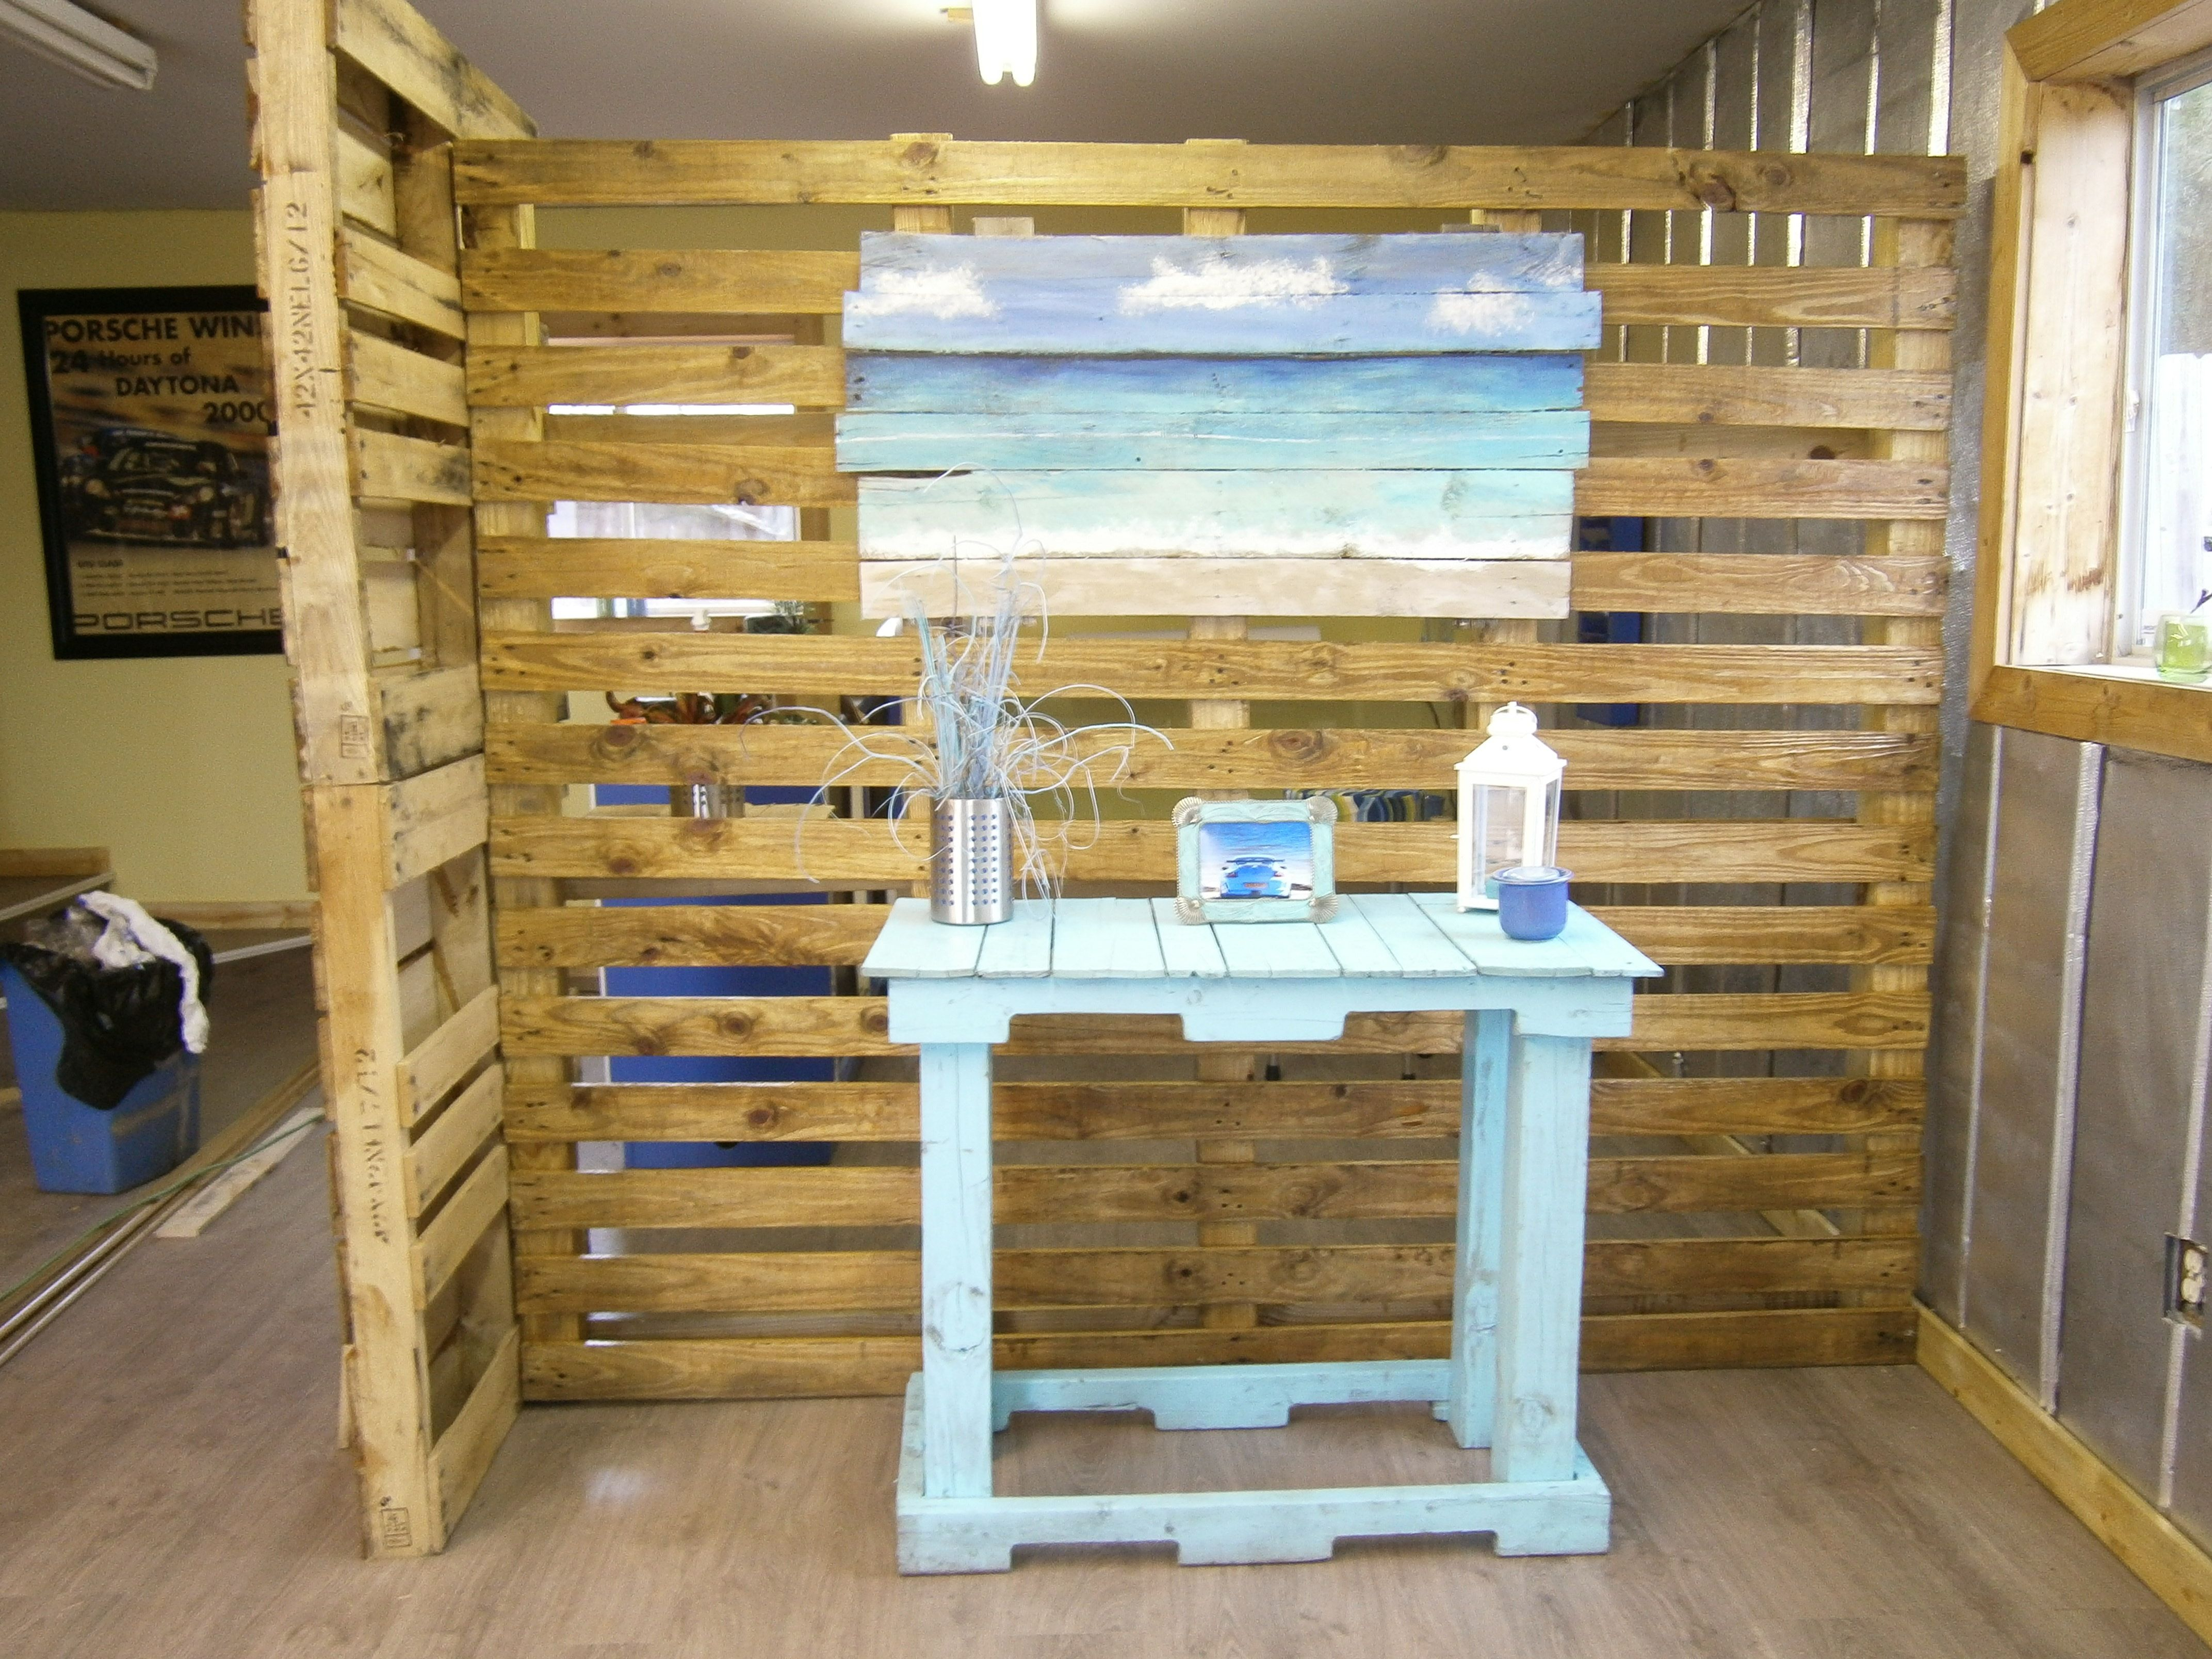 Pallet wall room divider trade show pinterest divider